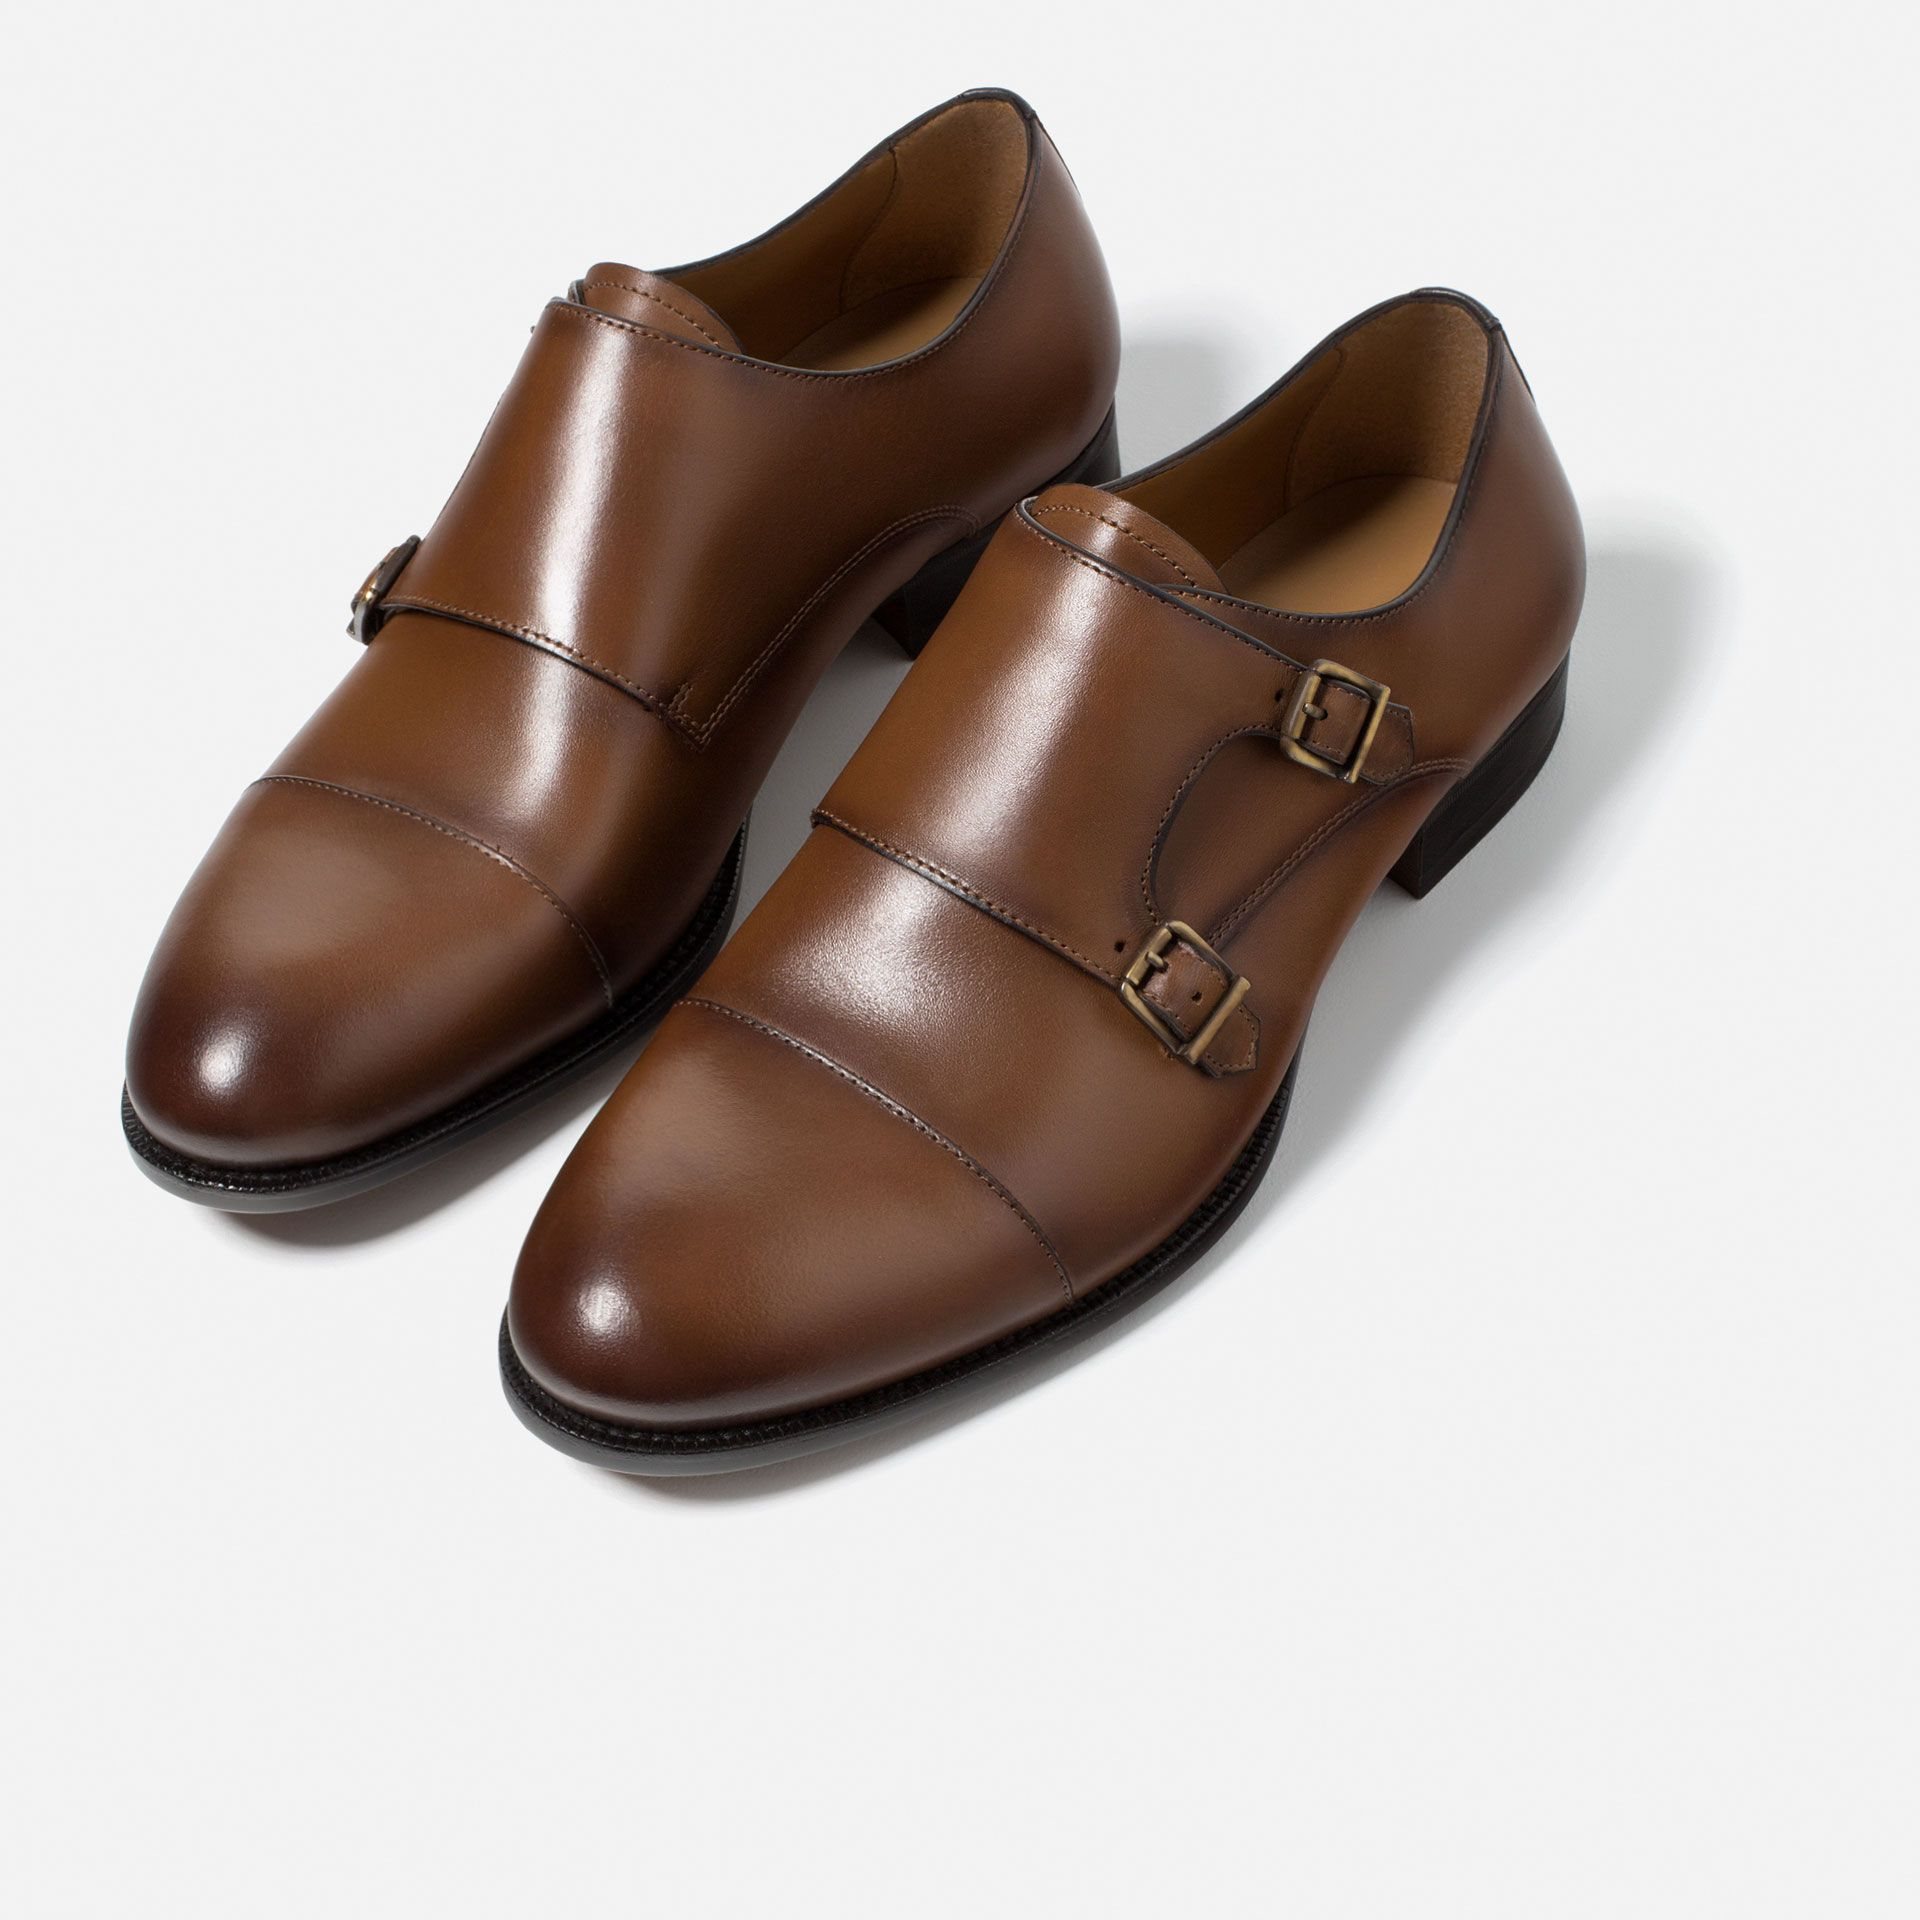 Pin By Mike Kozlovsky On Style Fashion Double Monk Strap Shoes Leather Shoes Men Dress Shoes Men